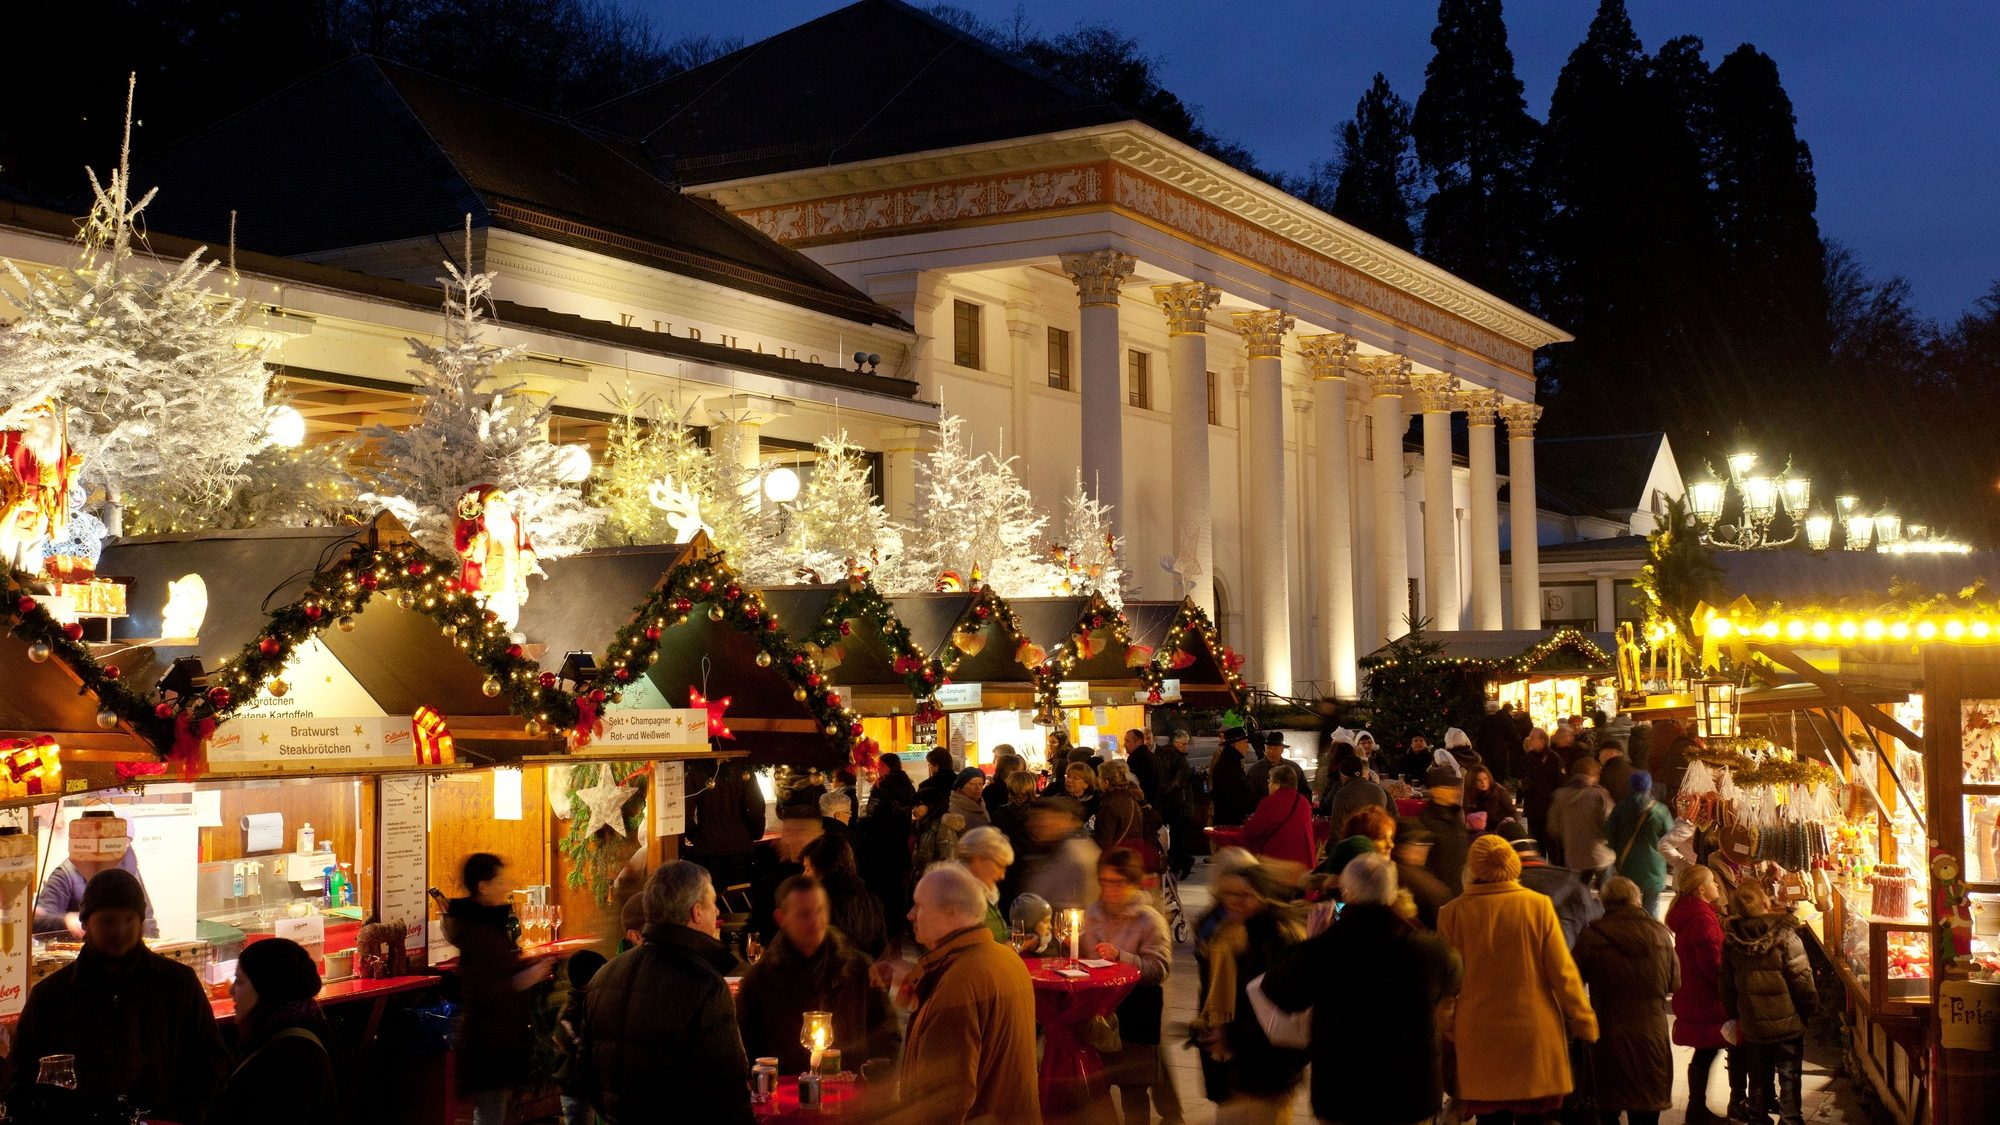 10th International choir and orchestra festival in Baden (Germany)